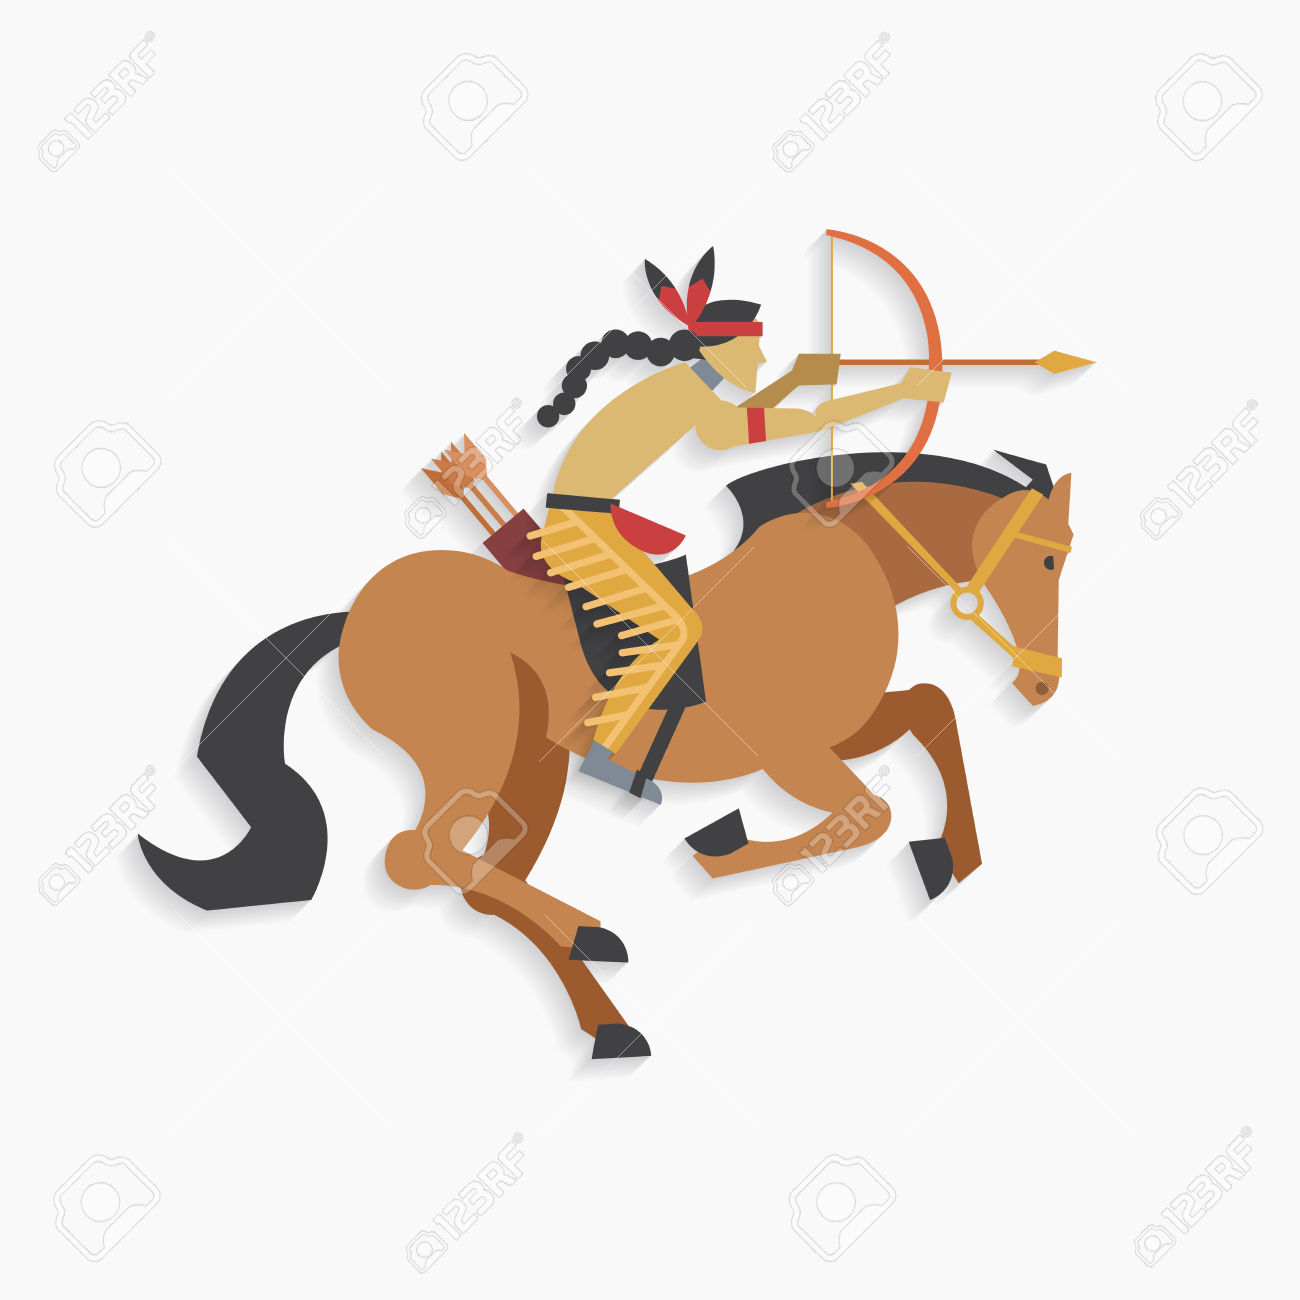 Warrior arrow clipart images png Native American Indian Warrior With Bow And Arrow Riding Horse ... png